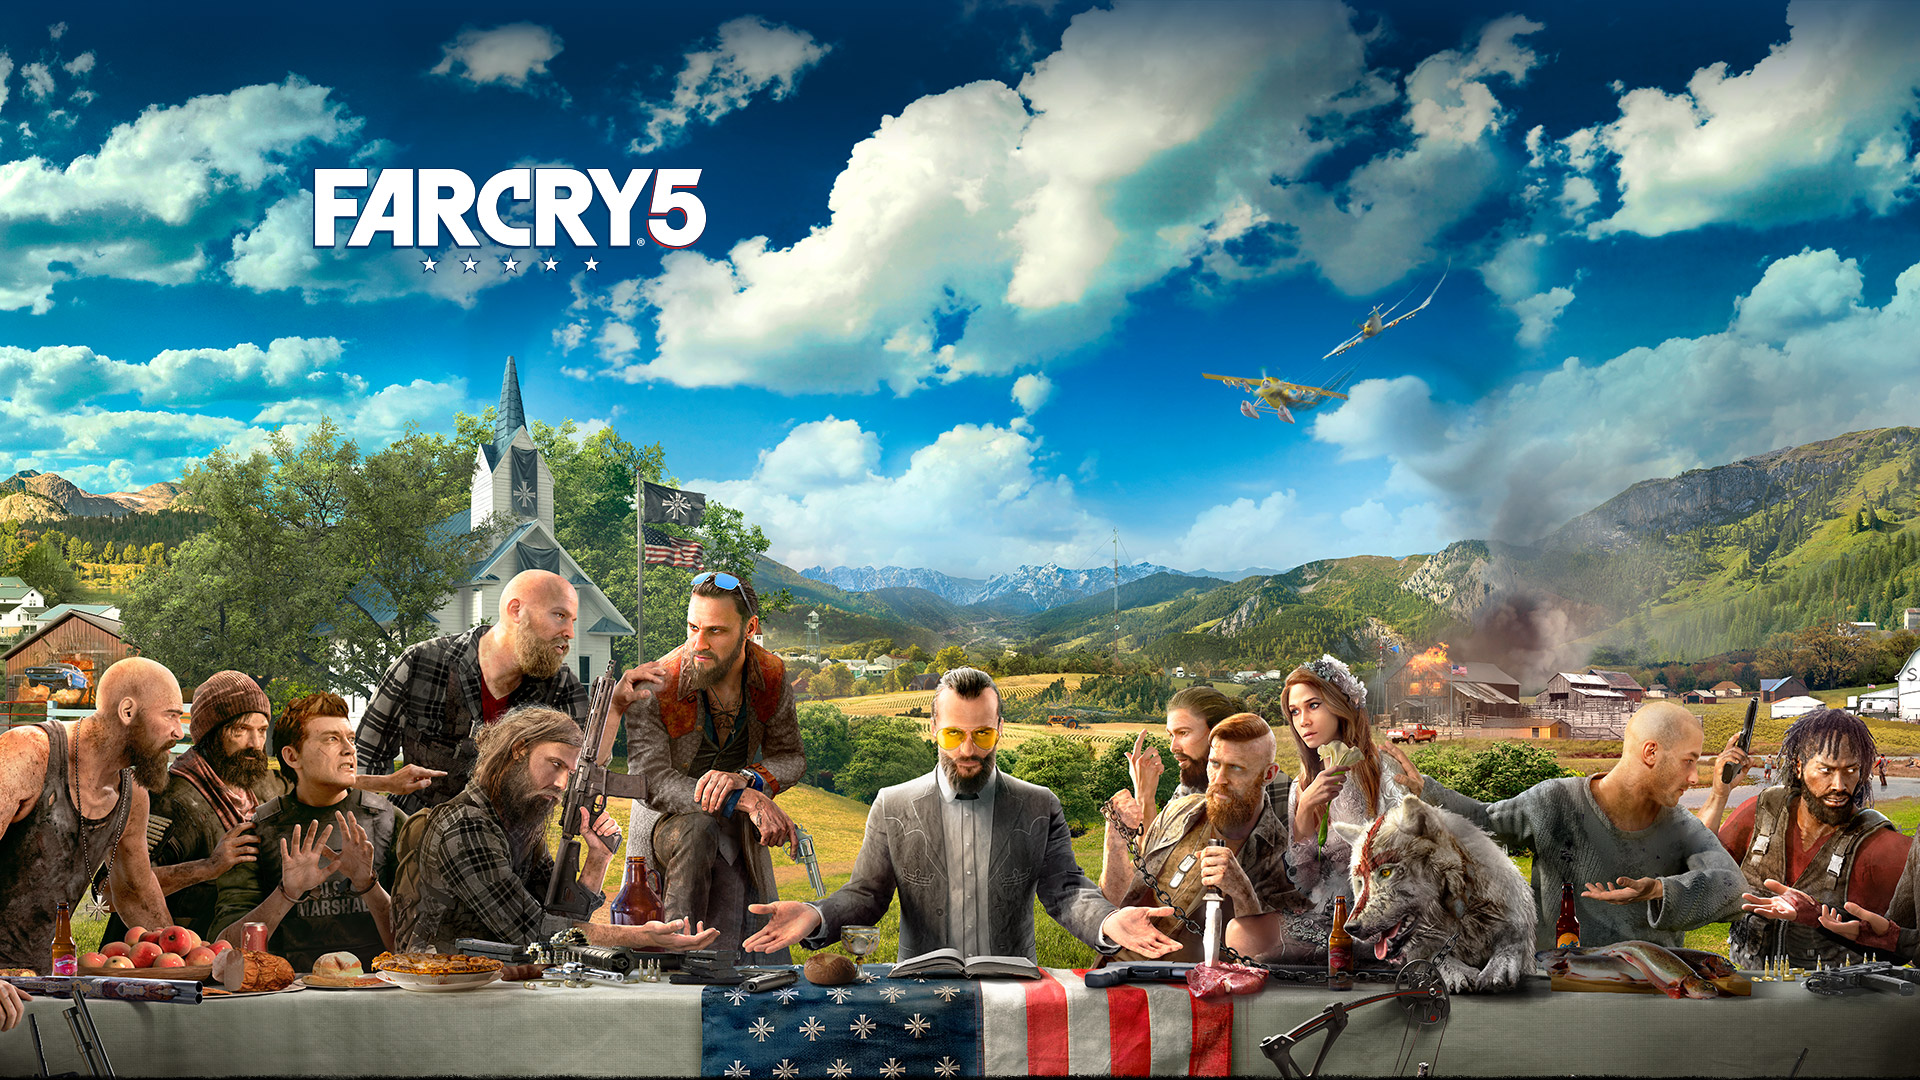 Far Cry 5, characters sitting at a table imitating Leonardo Da Vinci's Last Supper Painting